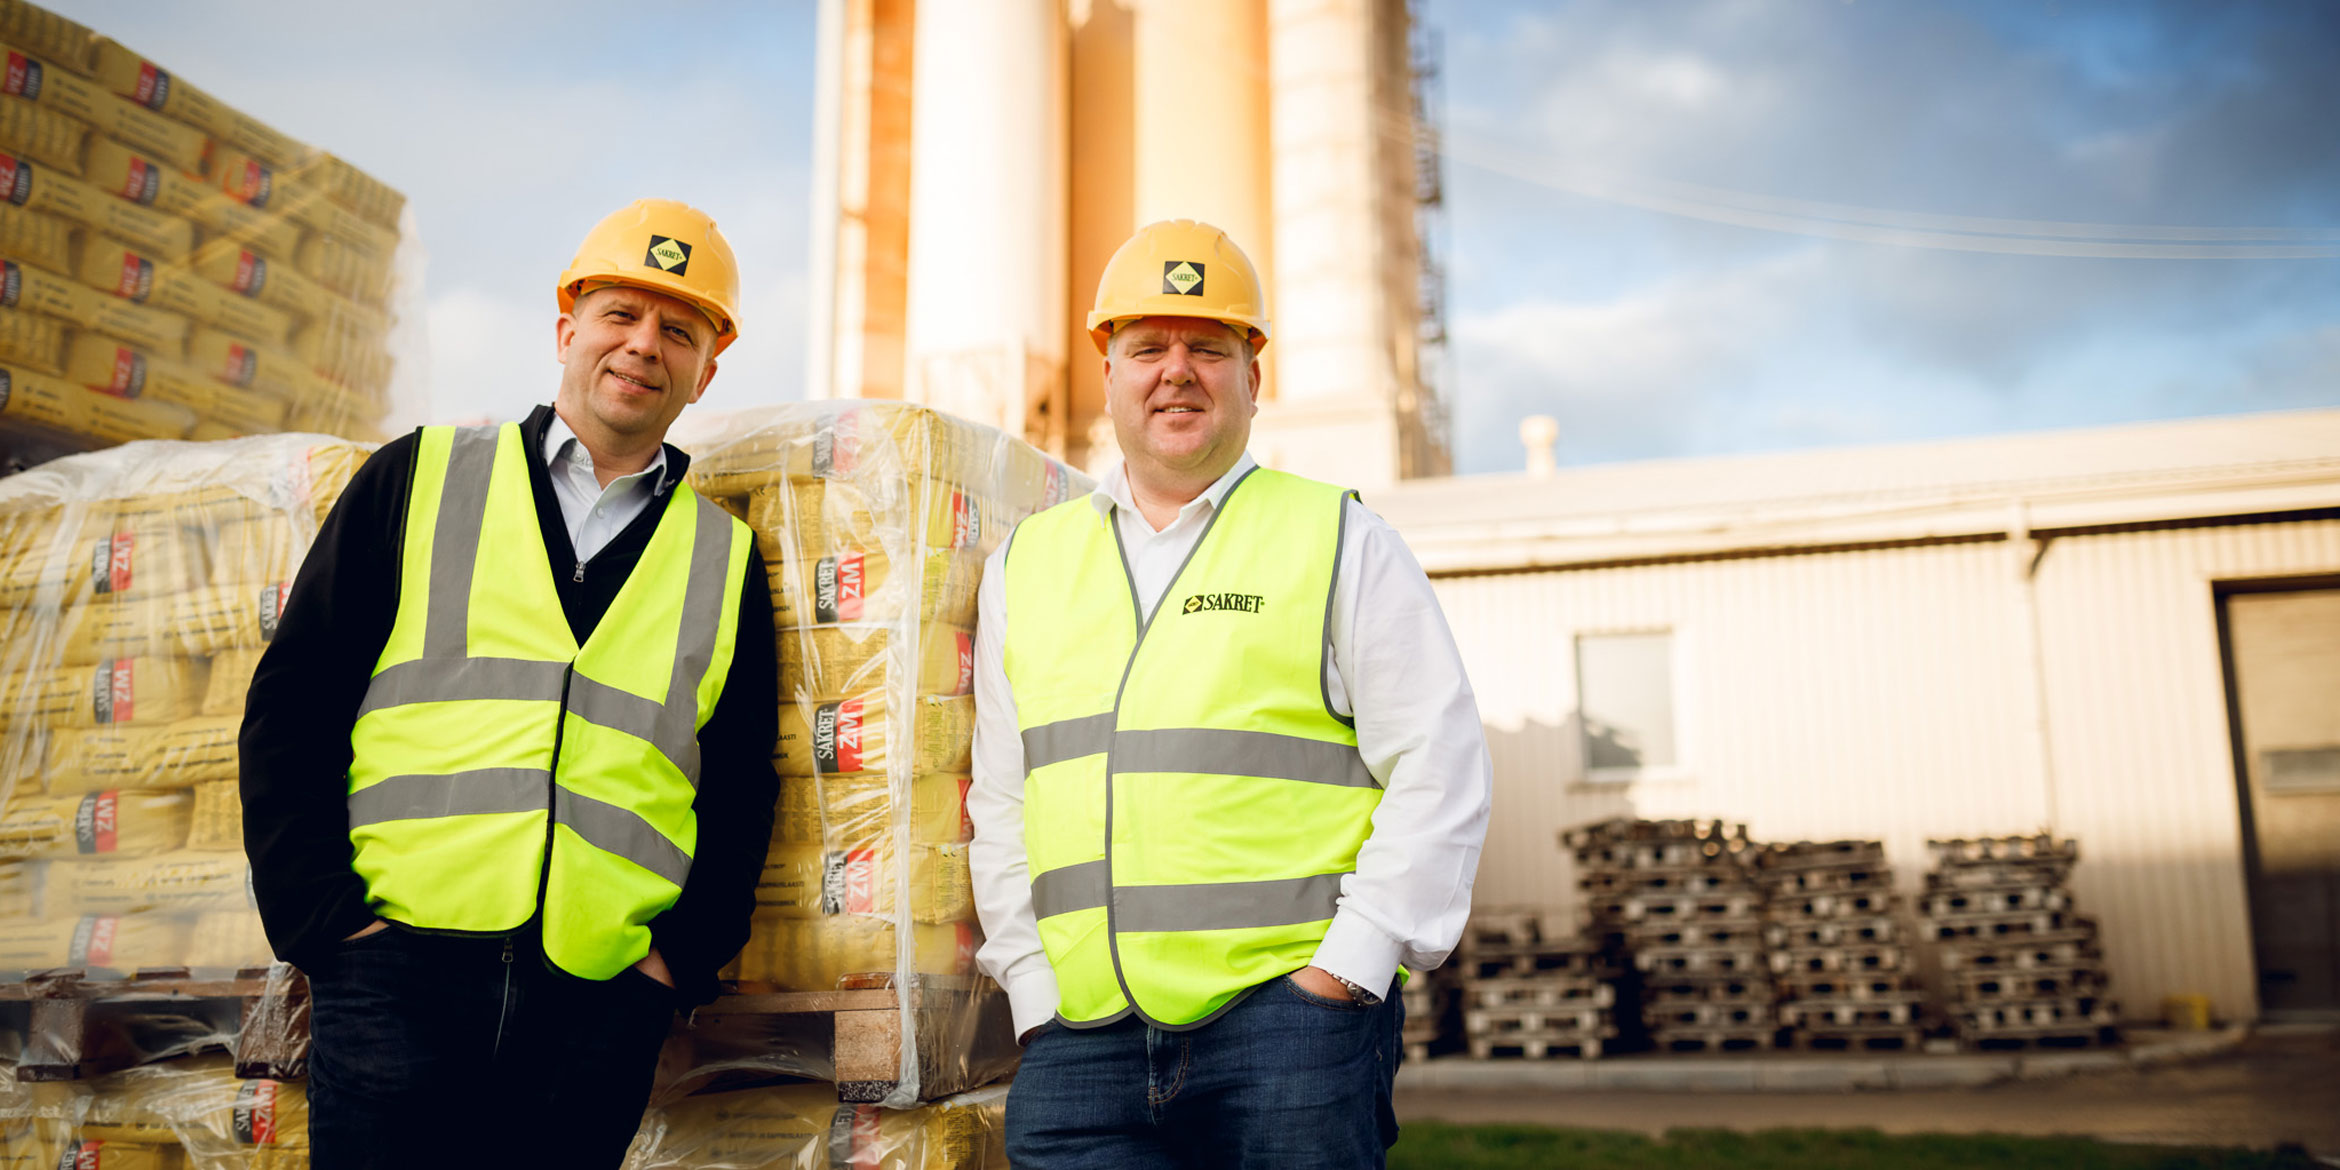 Dr. Andris Vanags and Juris Grinvalds in front of Silo and bags, large